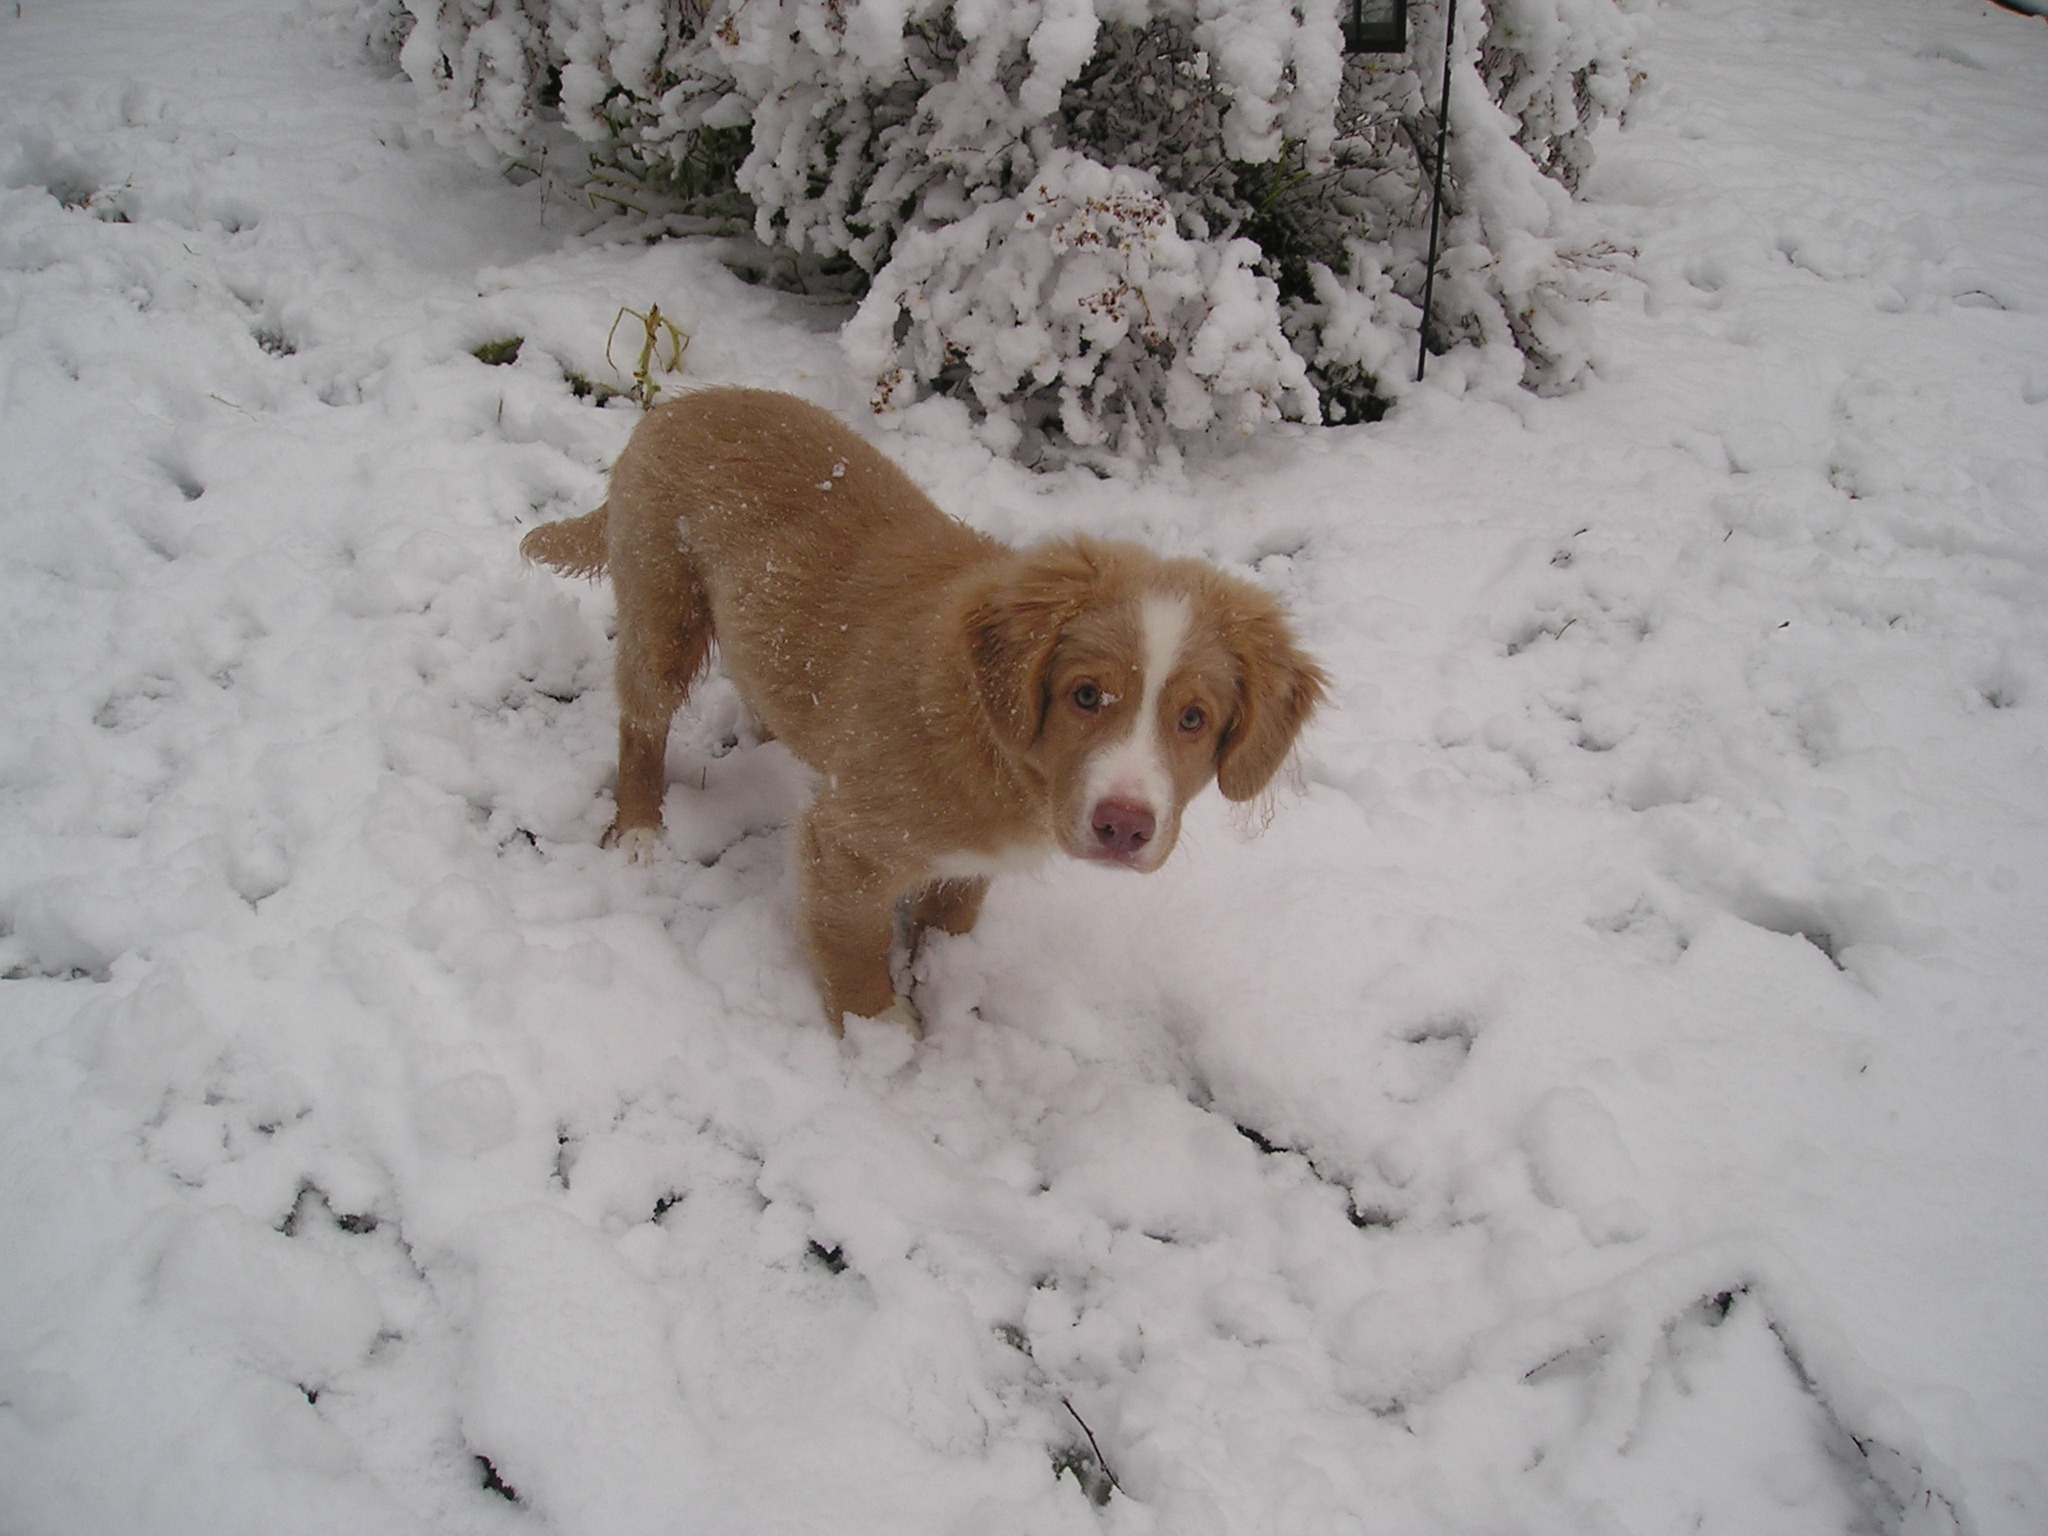 Nova Scotia Duck-Tolling Retriever in the snow wallpaper